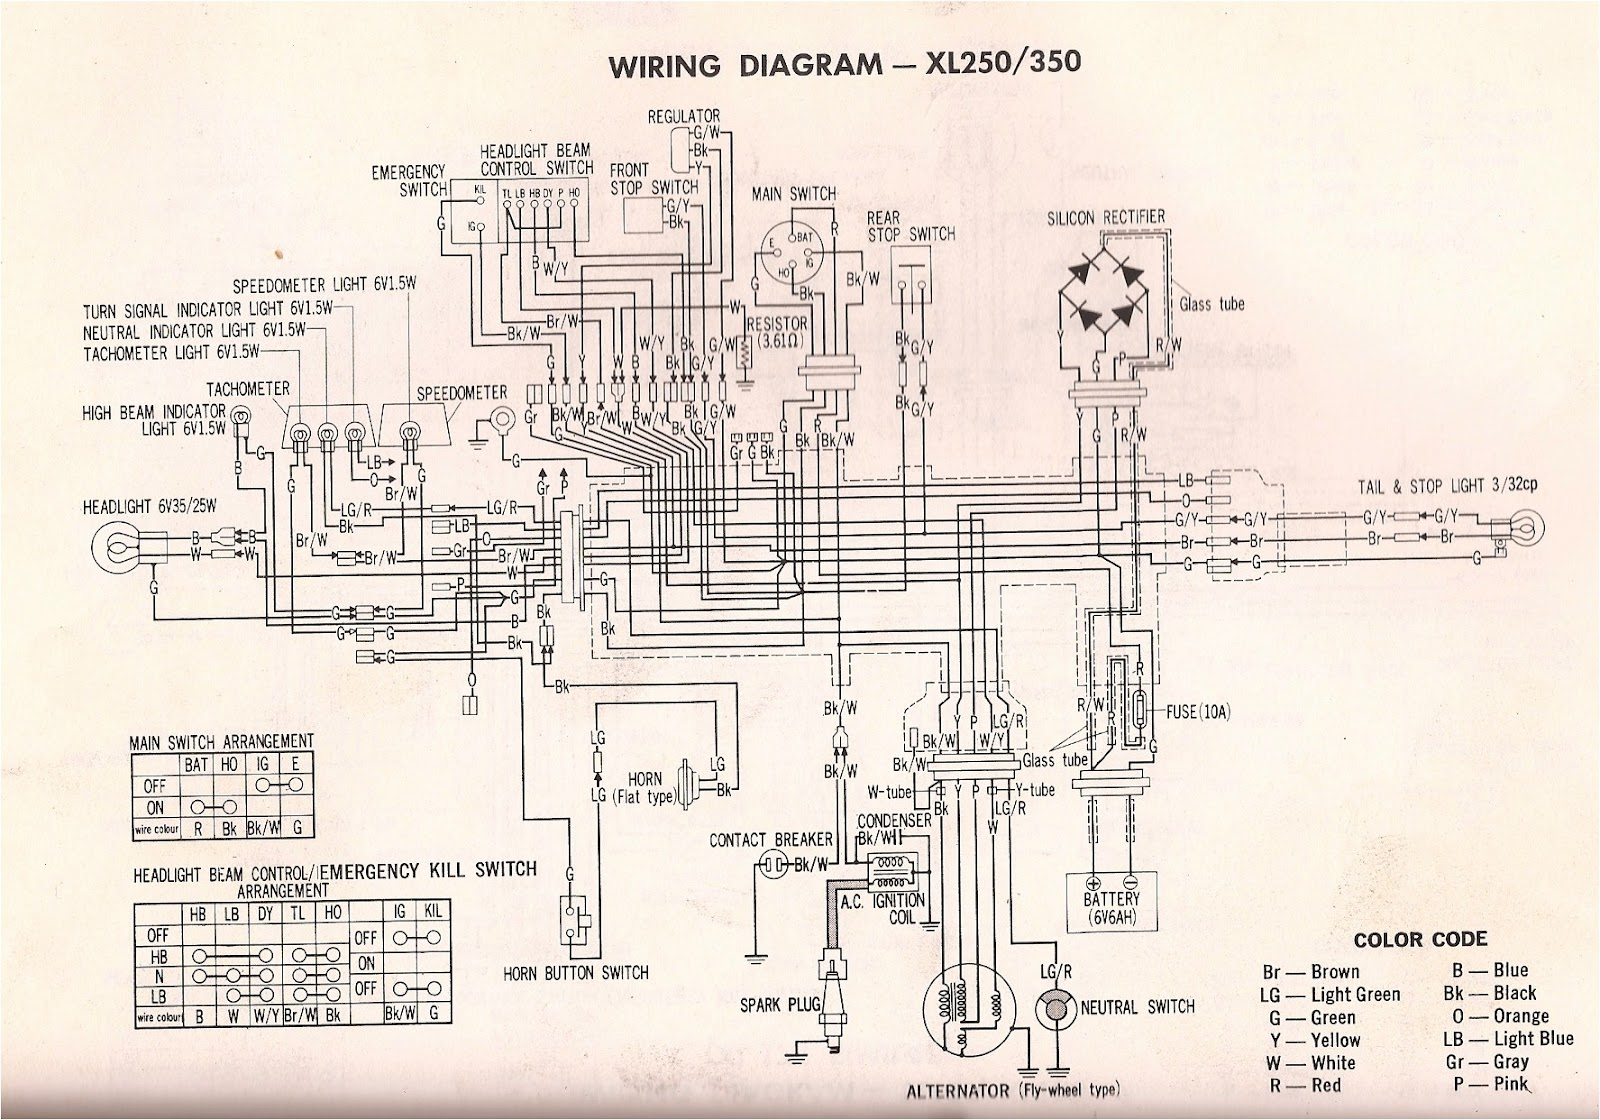 1966 Honda Dream Wiring Diagram Great Installation Of Best Ford Mustang Free Books Resources Rh Wiring5 Duckdns Org